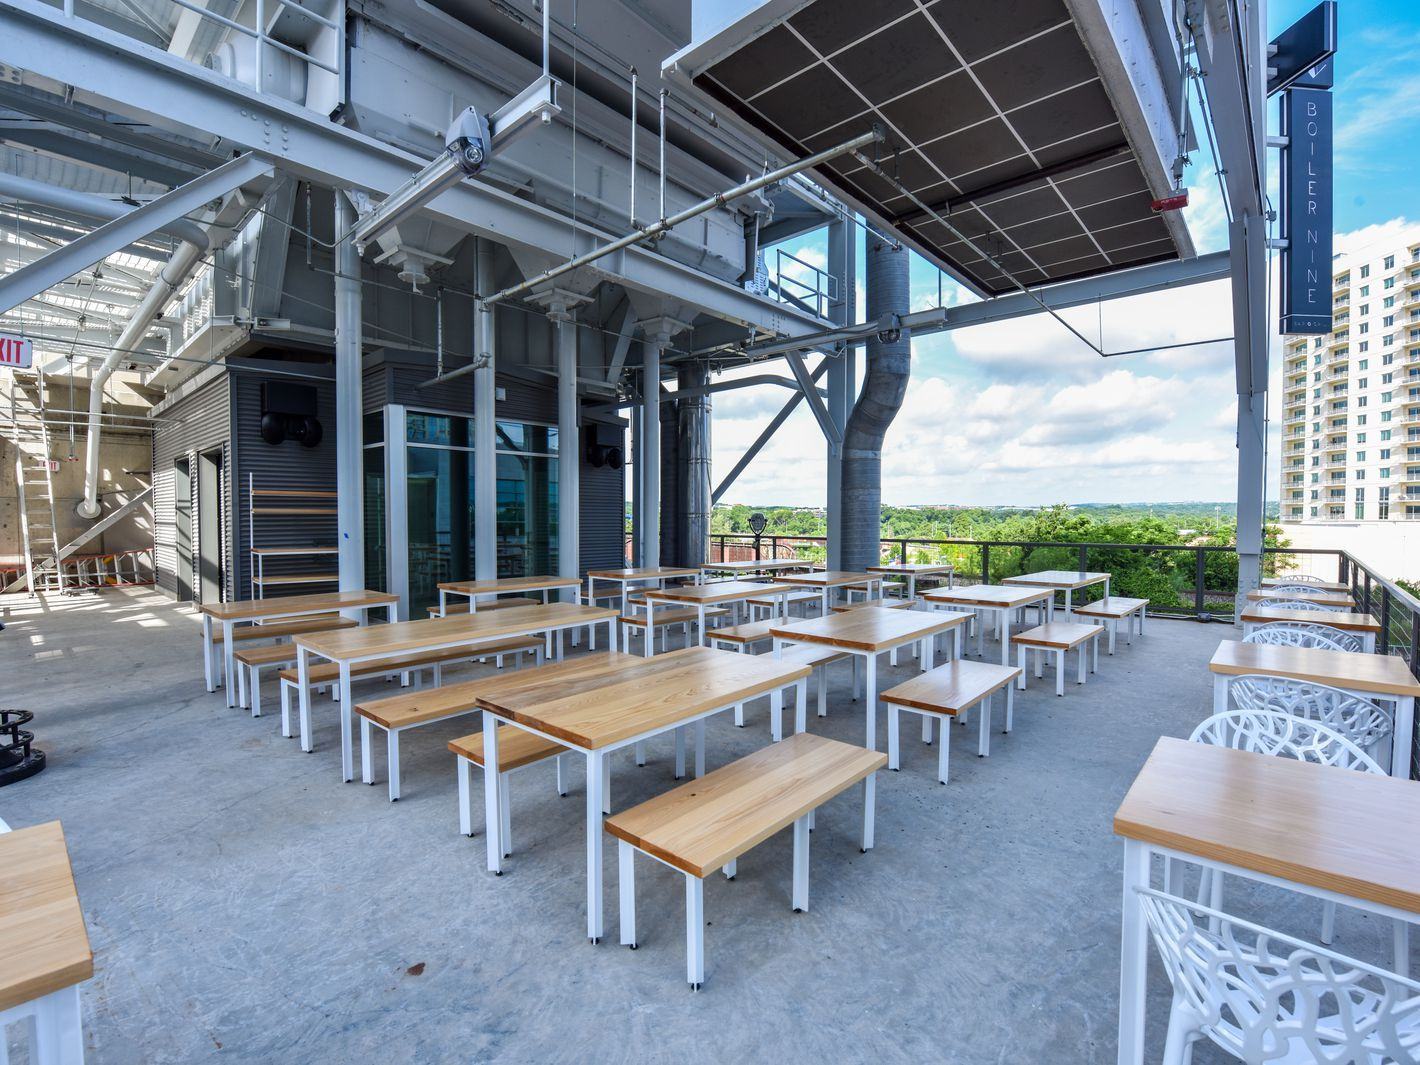 13 Austin Restaurants With Great Views | Best rooftop bars ...